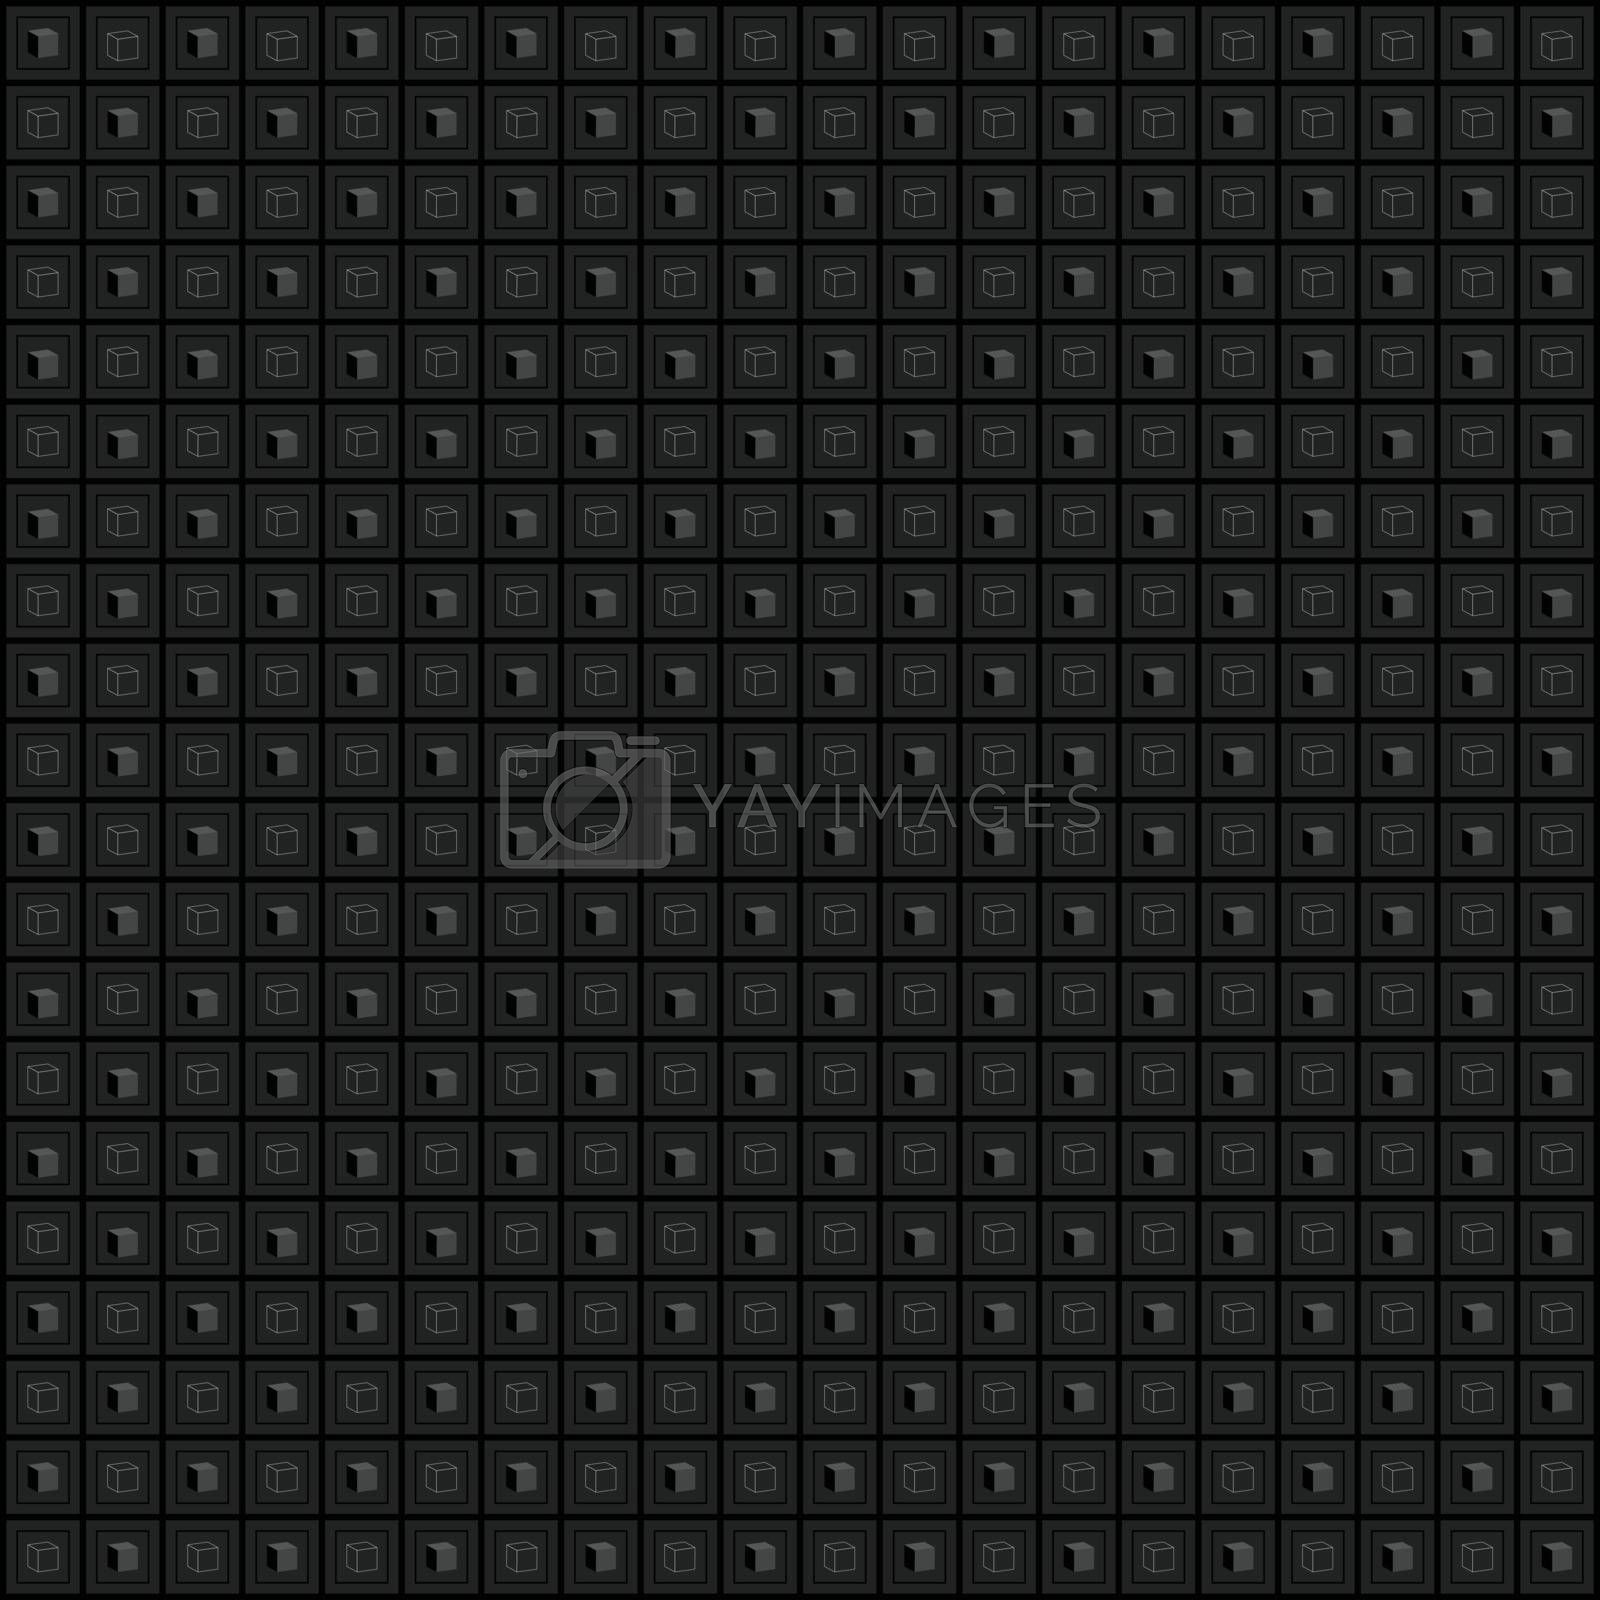 Seamless abstract background pattern, texture. Cubes.